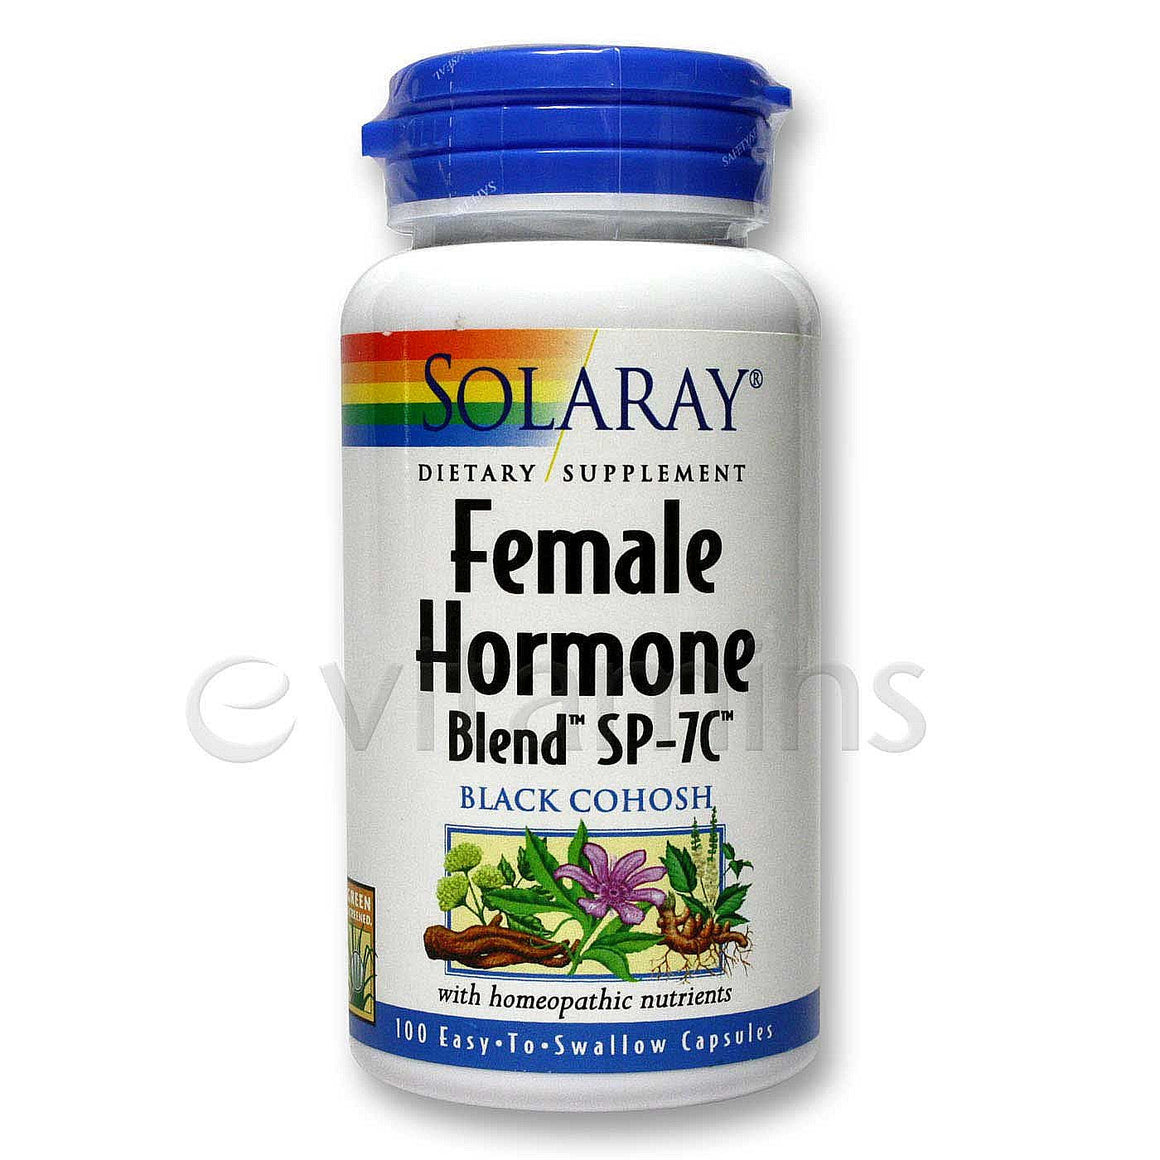 Solaray Female Hormone Blend SP-7C